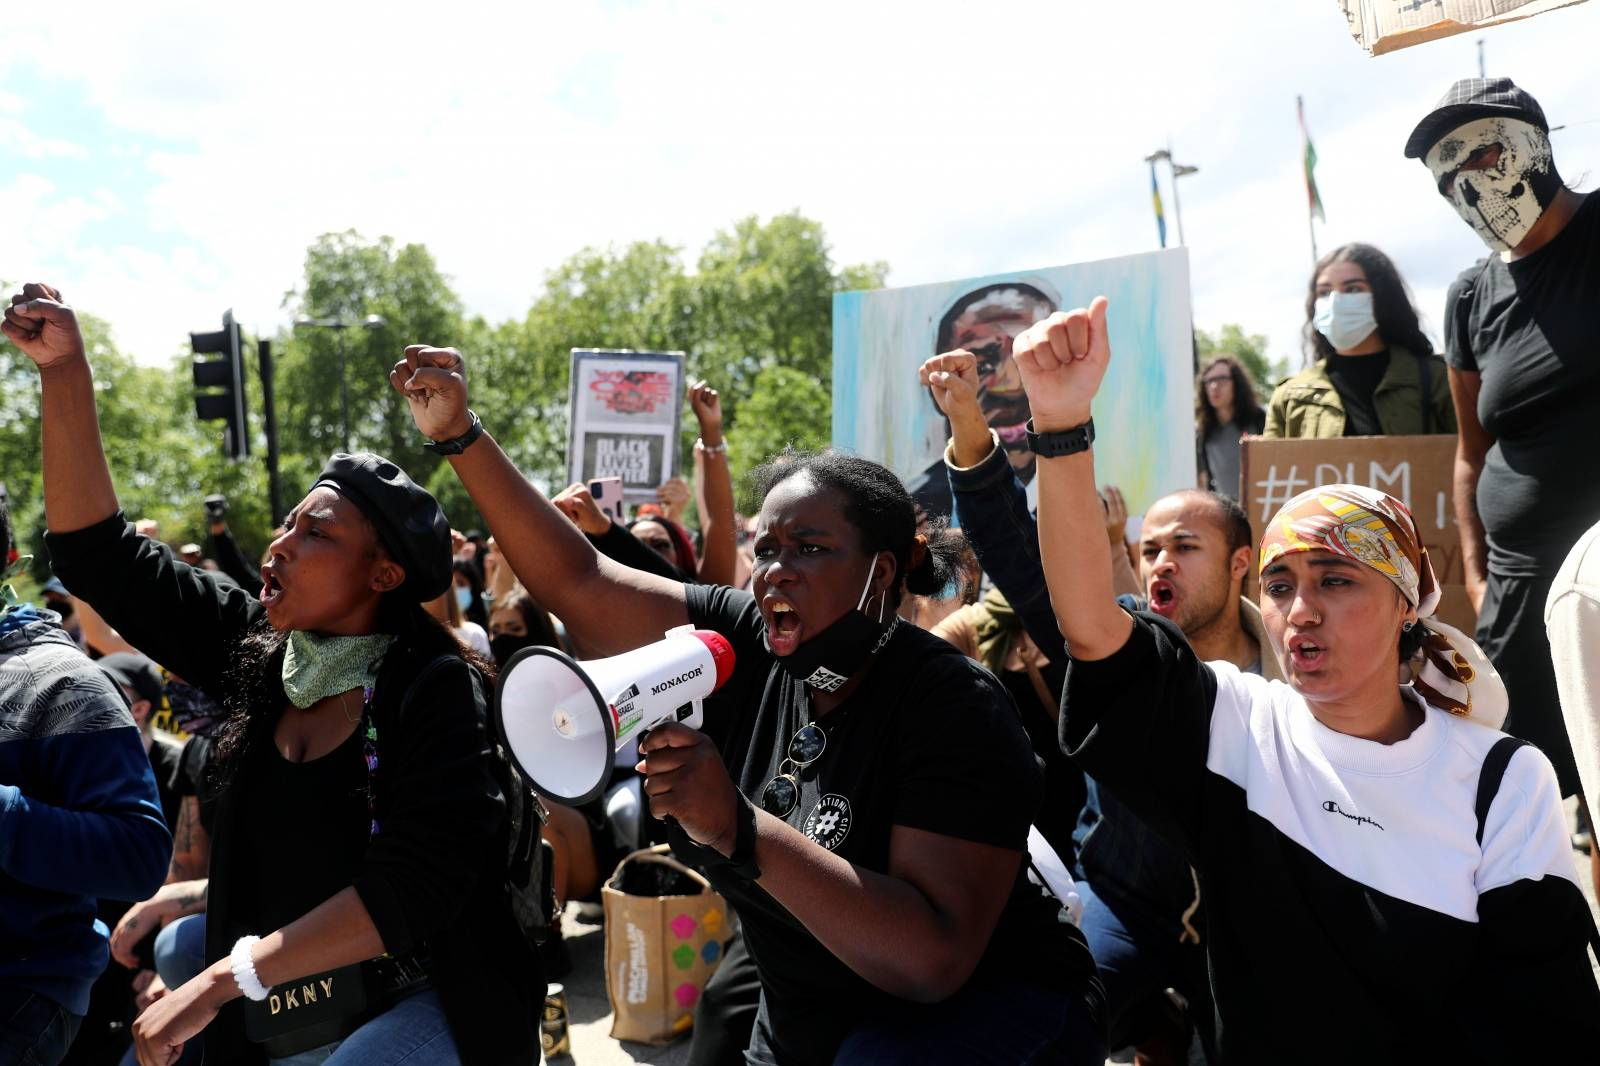 Black Lives Matter protest in London